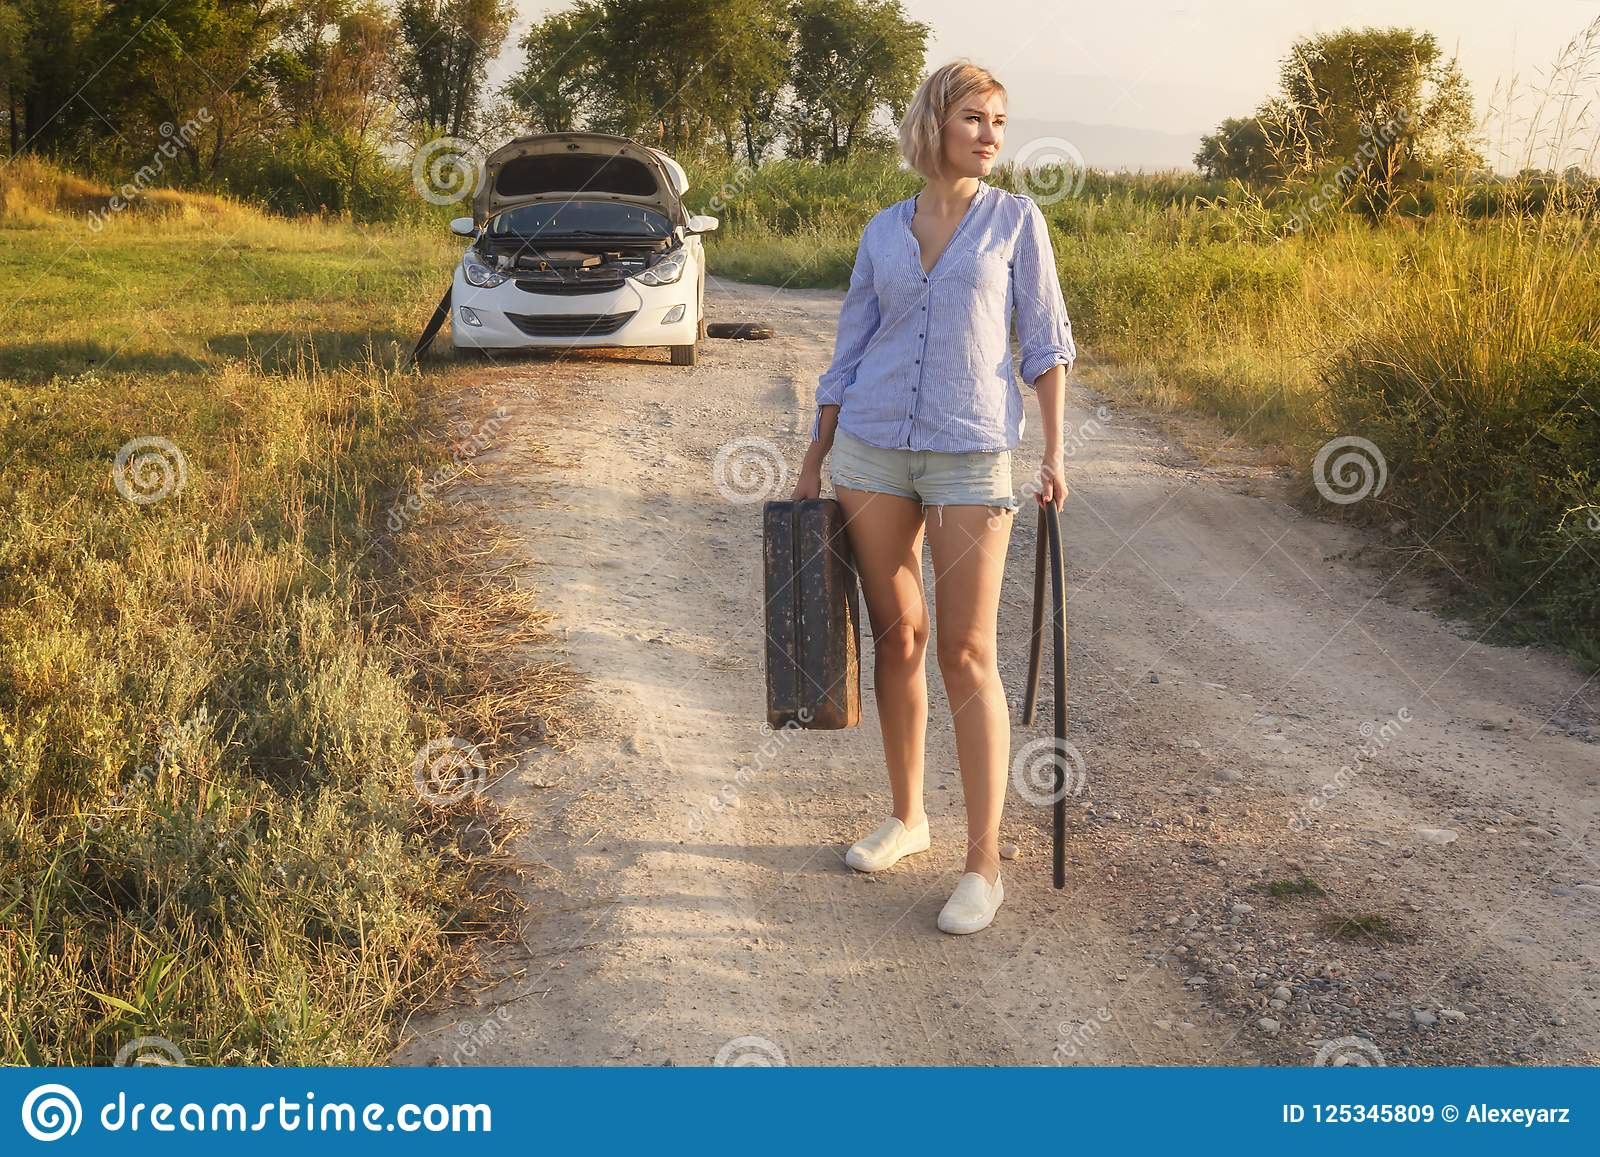 the beautiful girl driver in the car ran out of fuel and she walks along a rural road with an empty fuel tank stock image image of station girl 125345809 https www dreamstime com beautiful girl driver car ran out fuel walks along rural road empty tank rays sunset toned image125345809